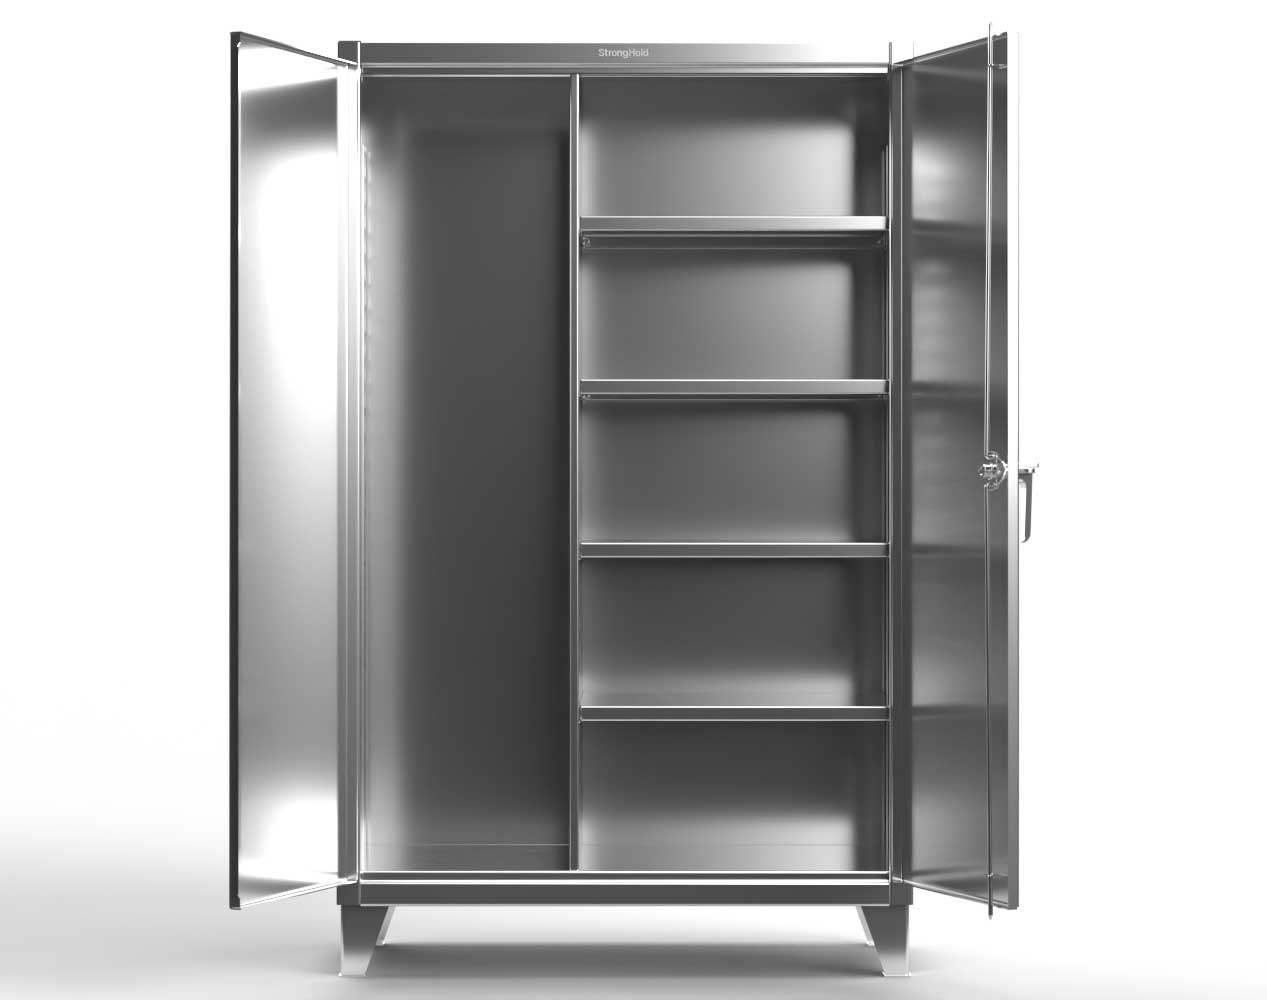 Extra Heavy Duty 12 GA Stainless Steel Janitorial Cabinet with 4 Shelves – 60 In. W x 24 In. D x 78 In. H